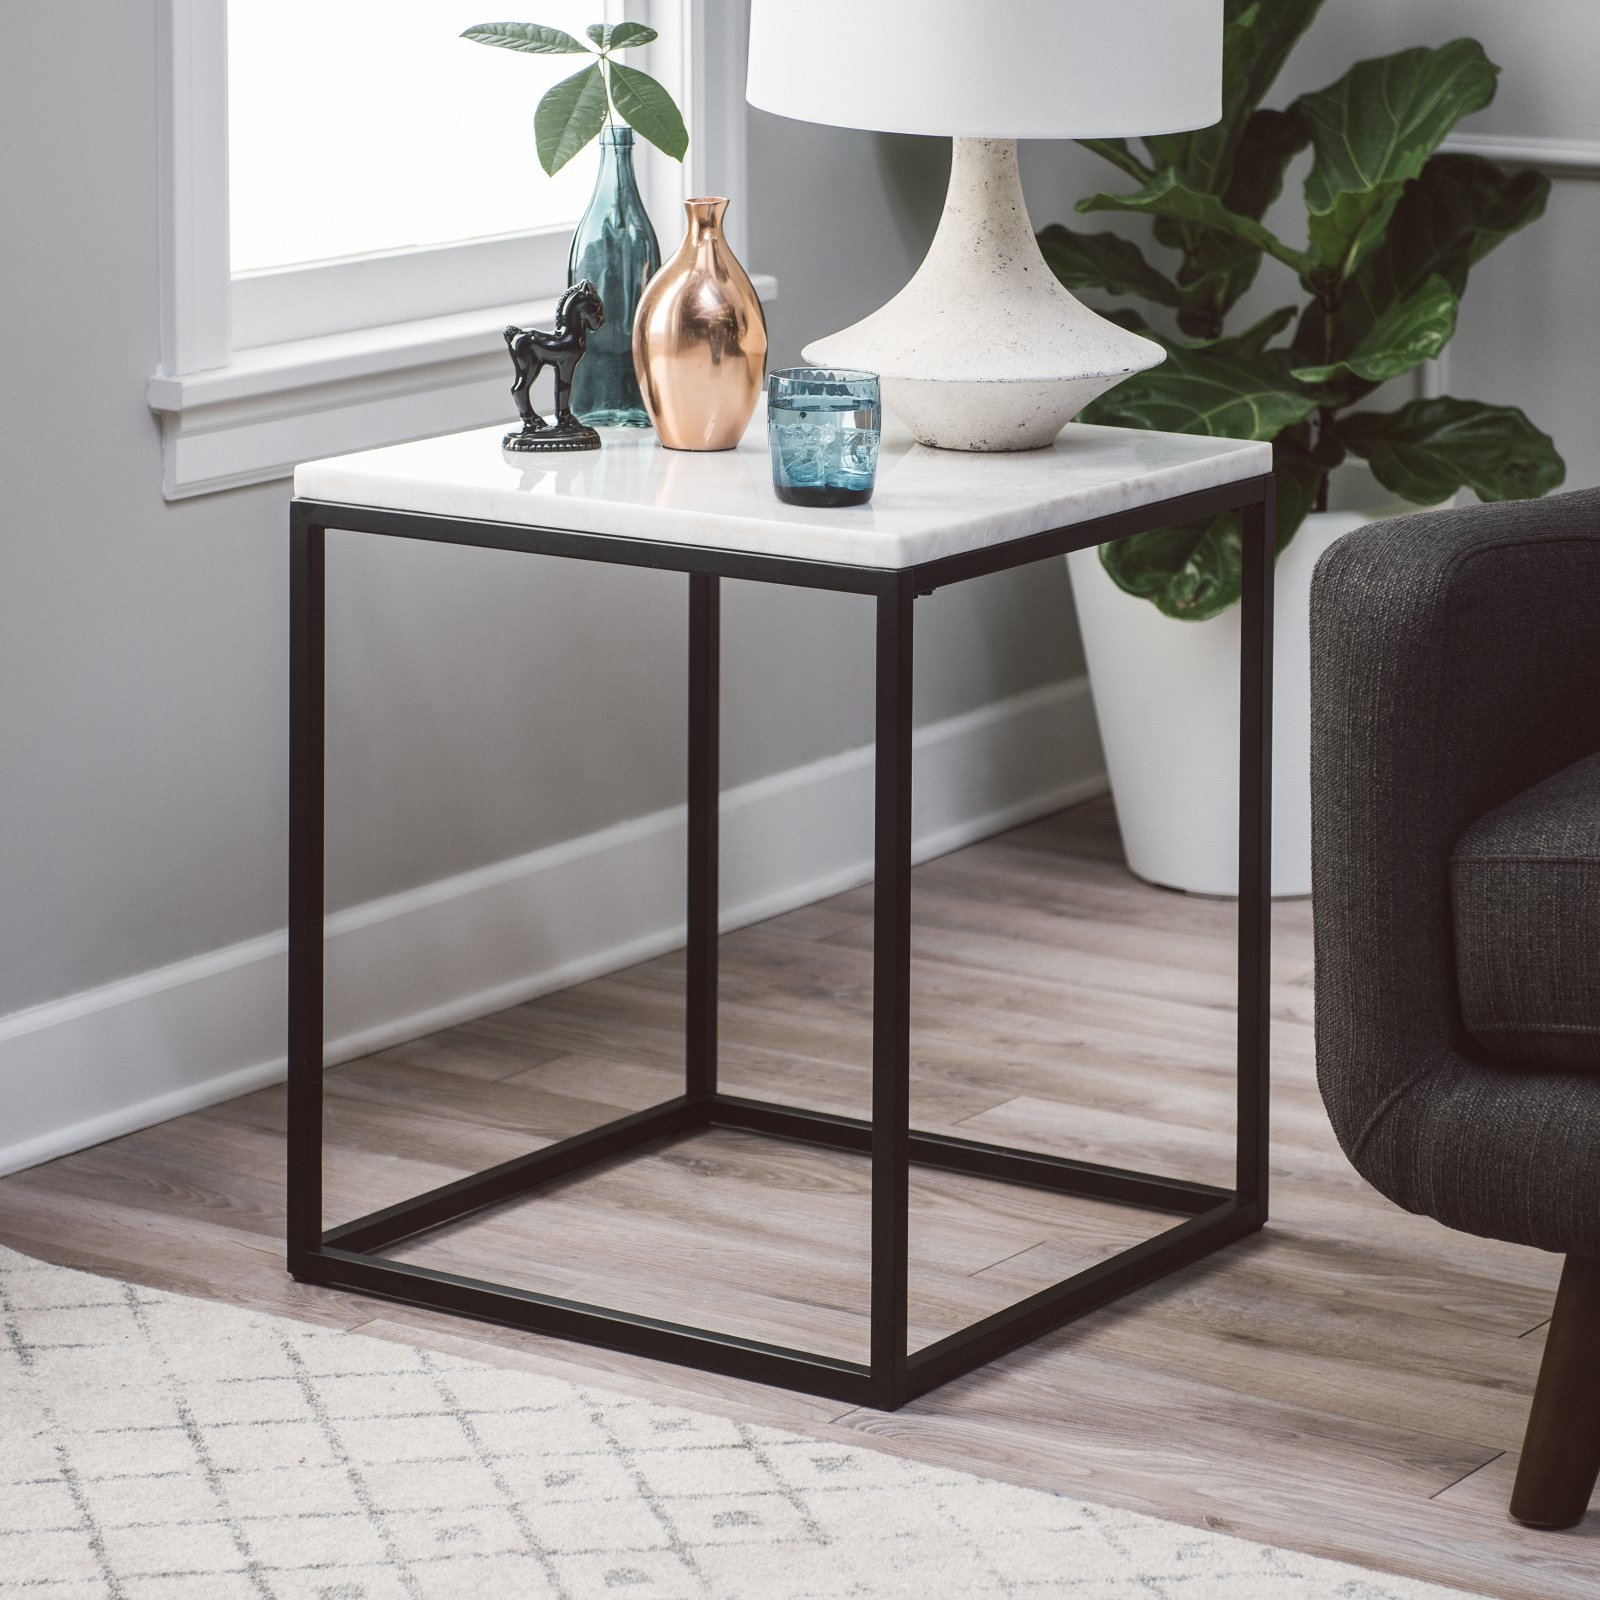 Belham Living Sorenson Square End Table with Marble Top